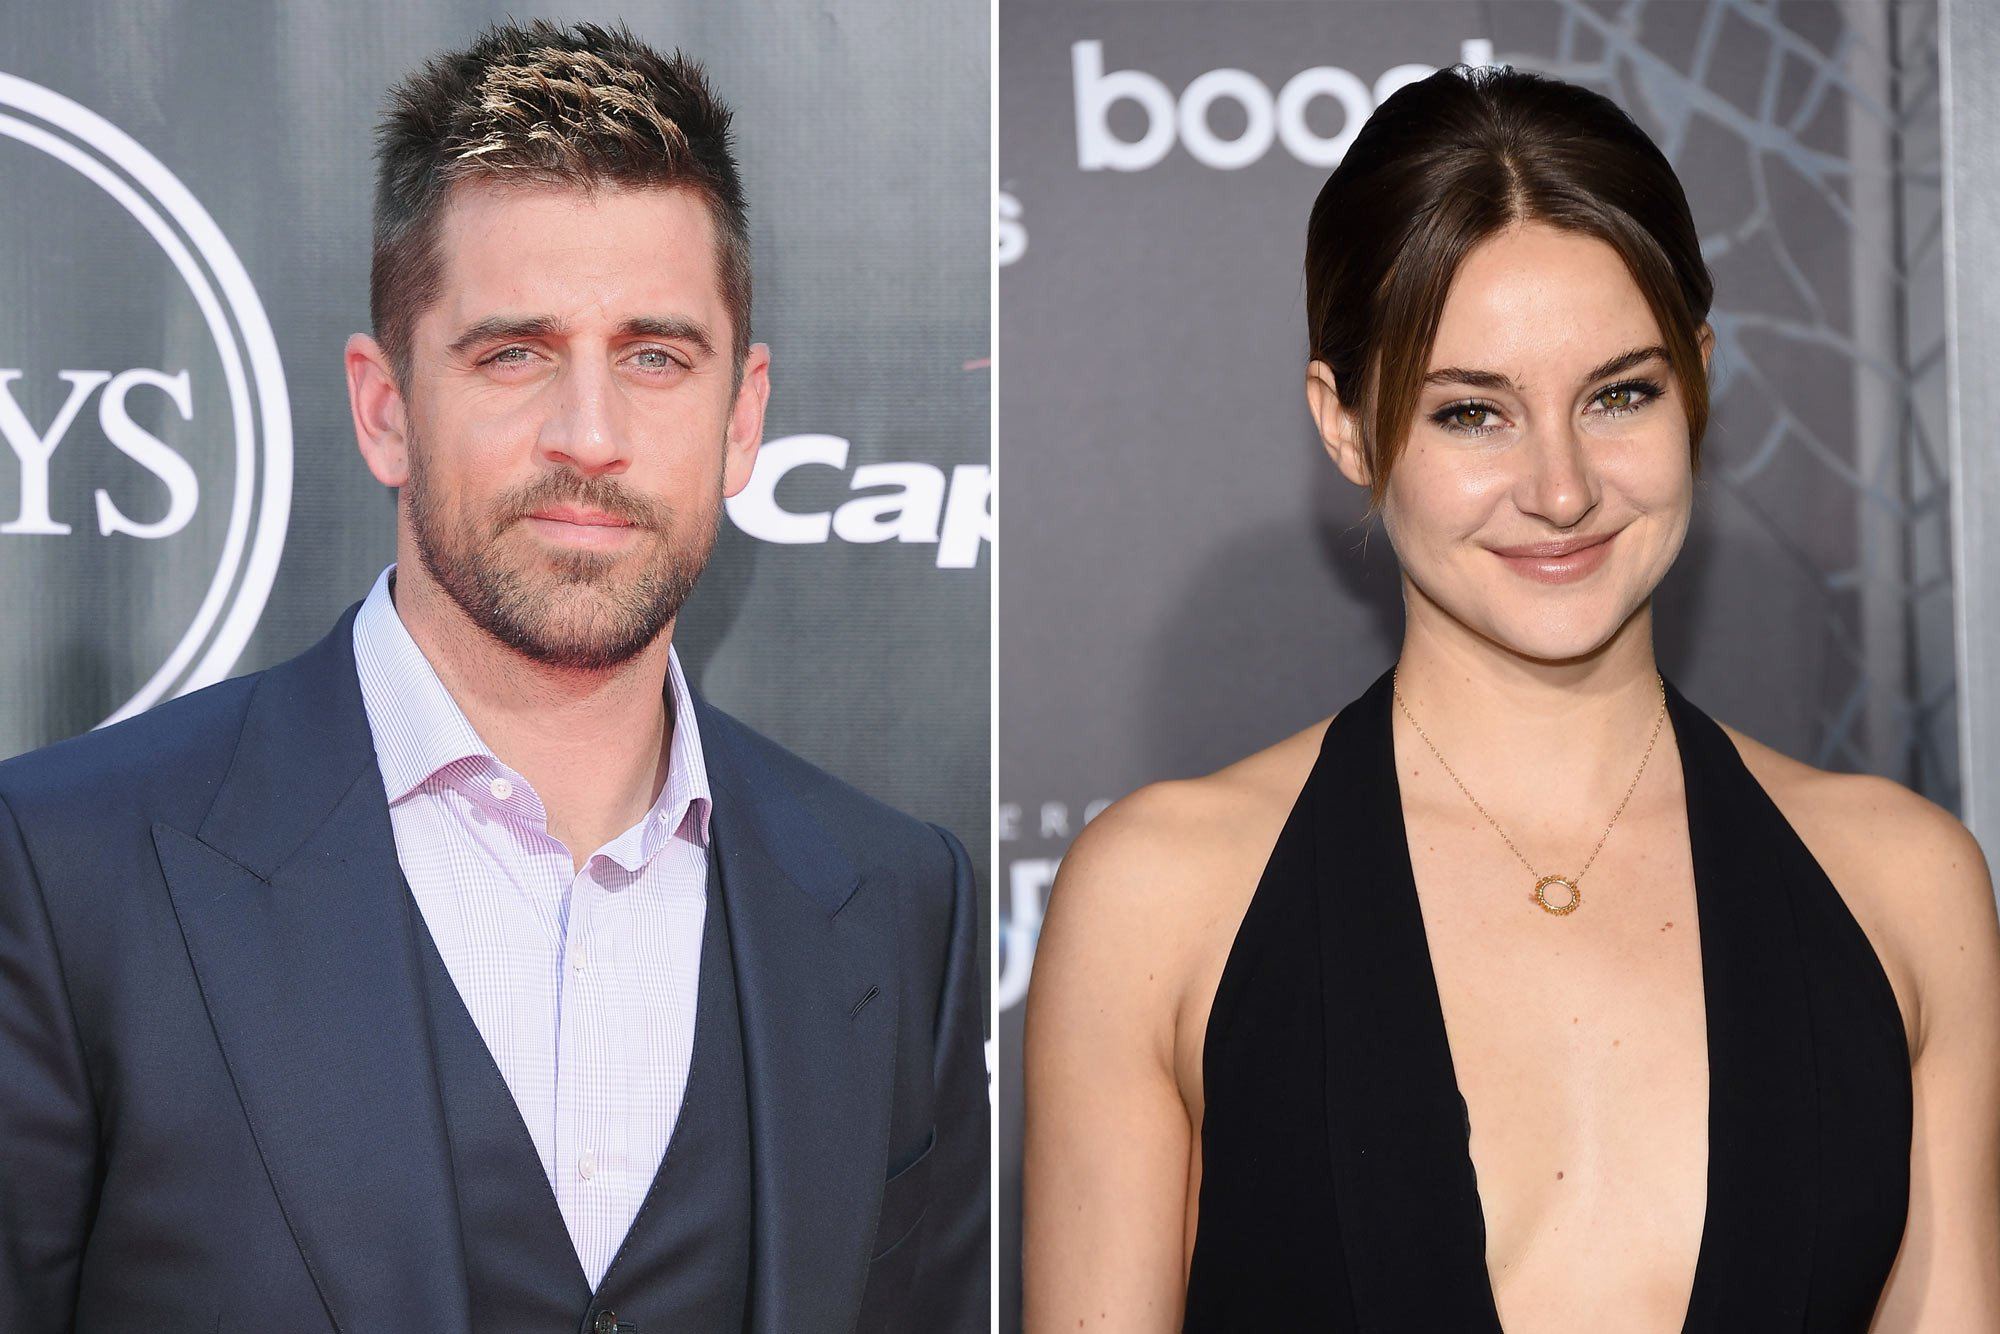 Aaron Rodgers And Shailene Woodley's Engagement Confirmed!